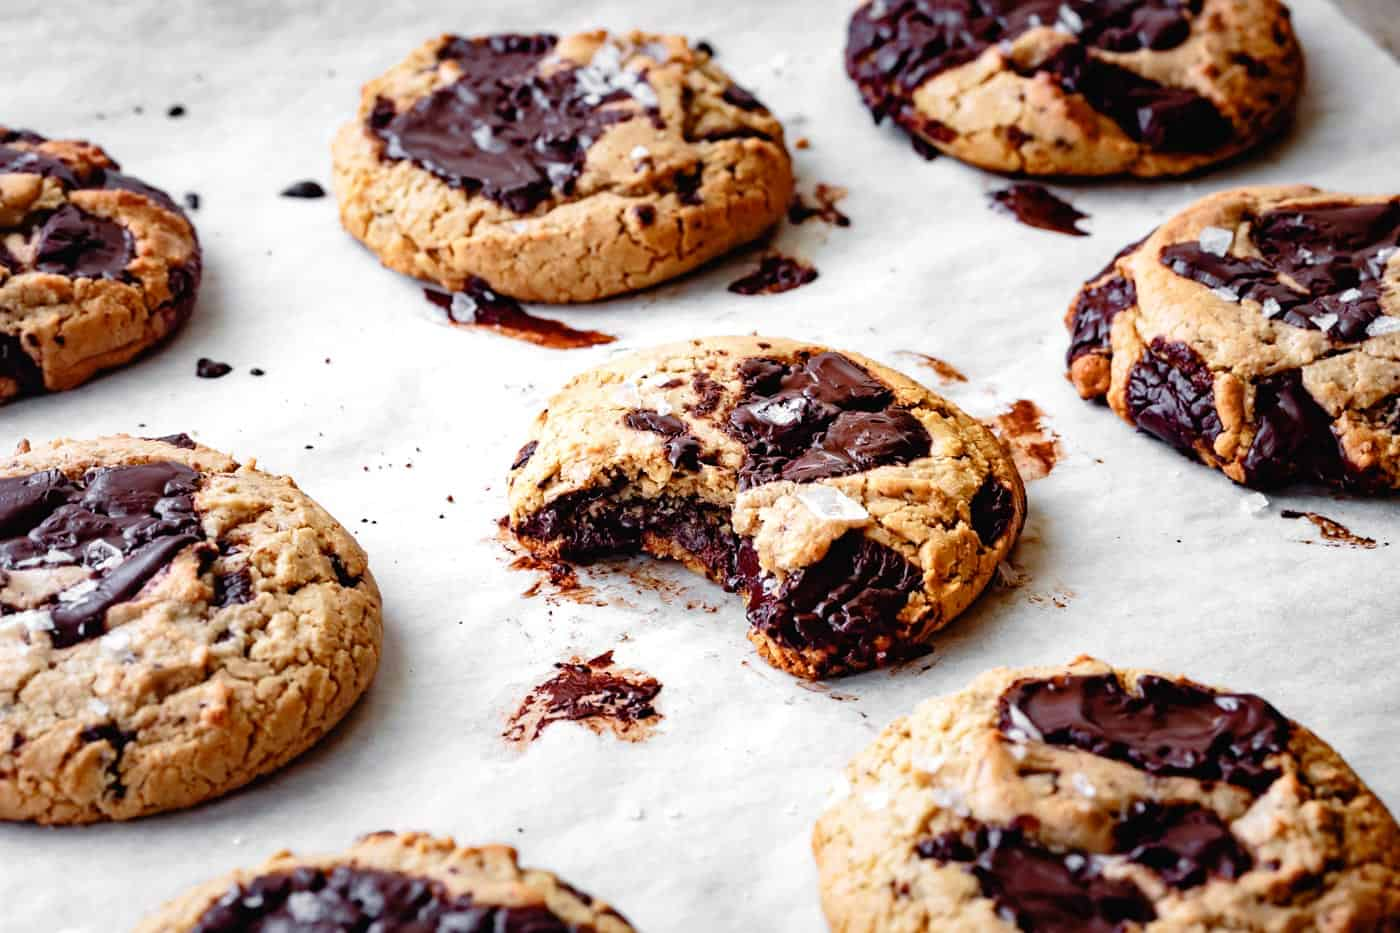 paleo grain-free chocolate chip cookies on a cookie sheet with a bite taken out